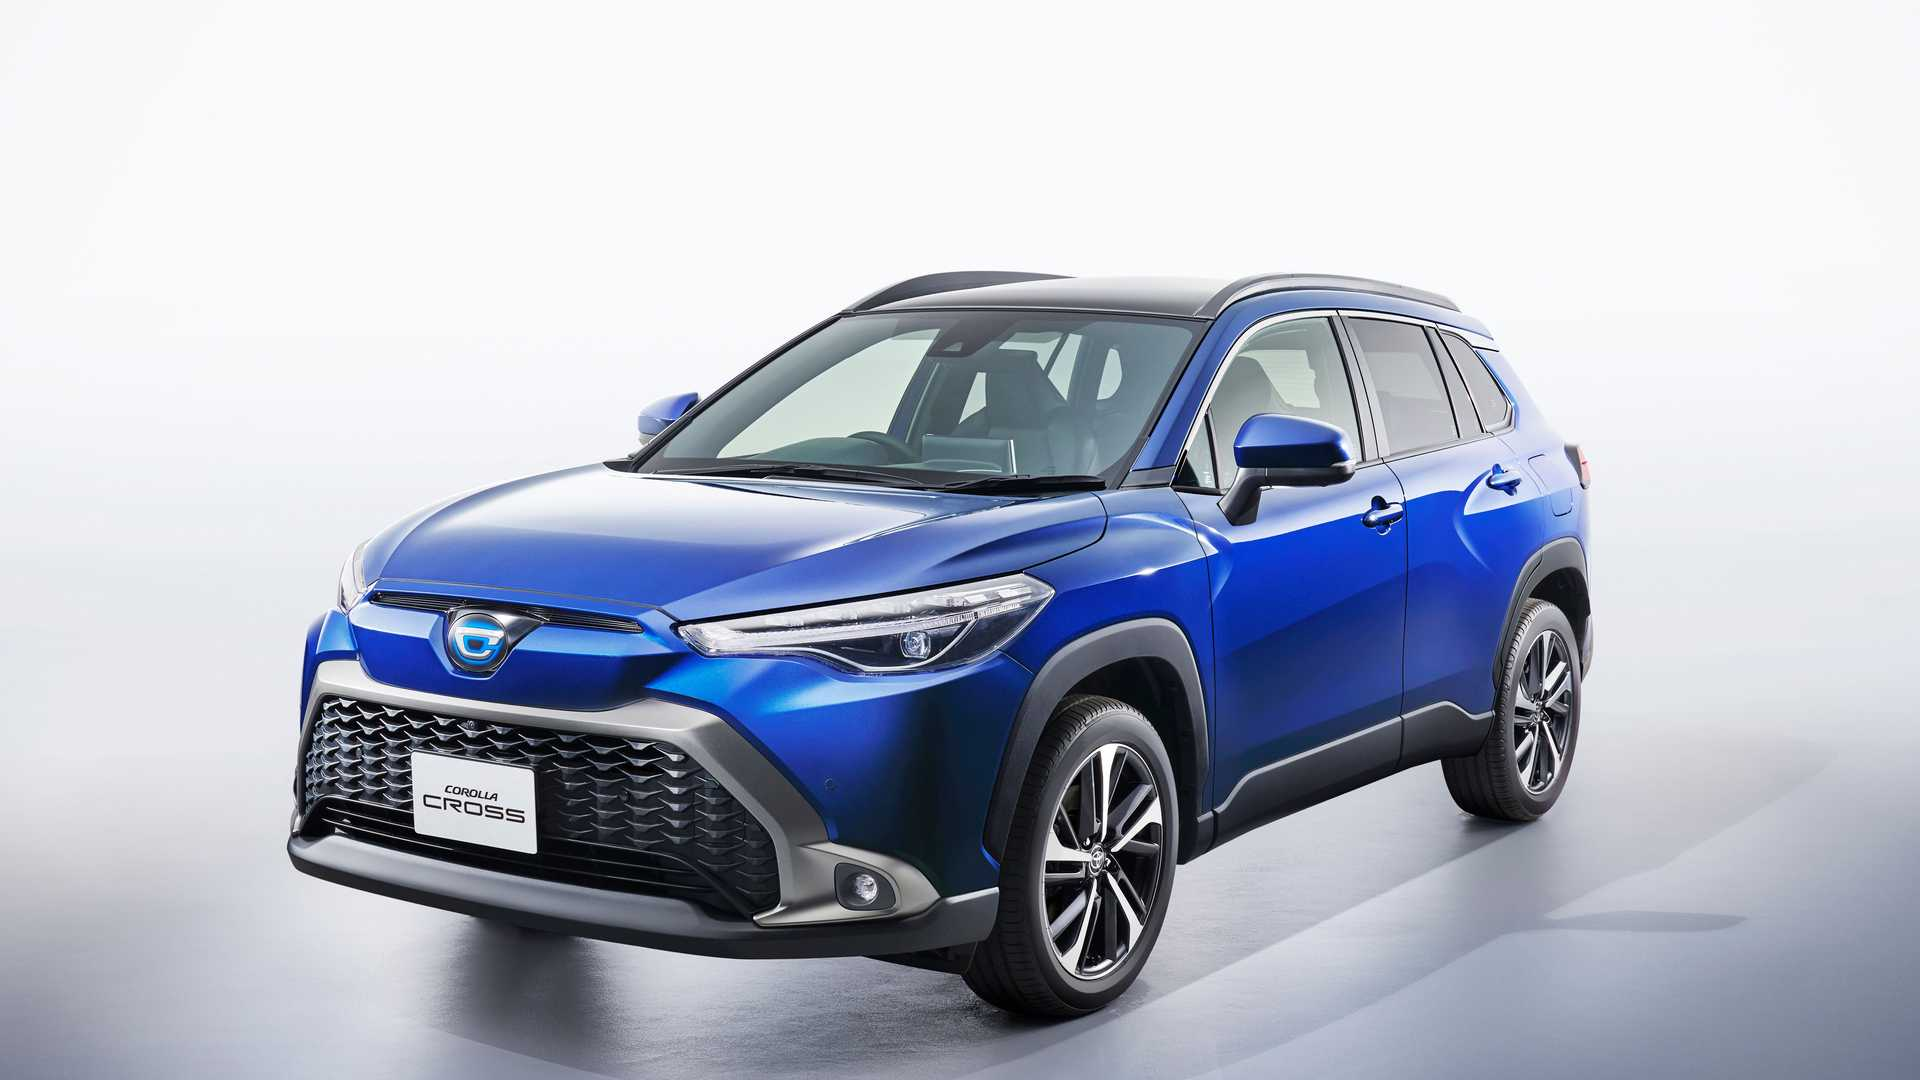 Having debuted this summer, the Toyota Corolla Cross is already available to buy in the USA, South America, Thailand, and Taiwan. Japan finally joins the list now, with minor stylistic retouches.